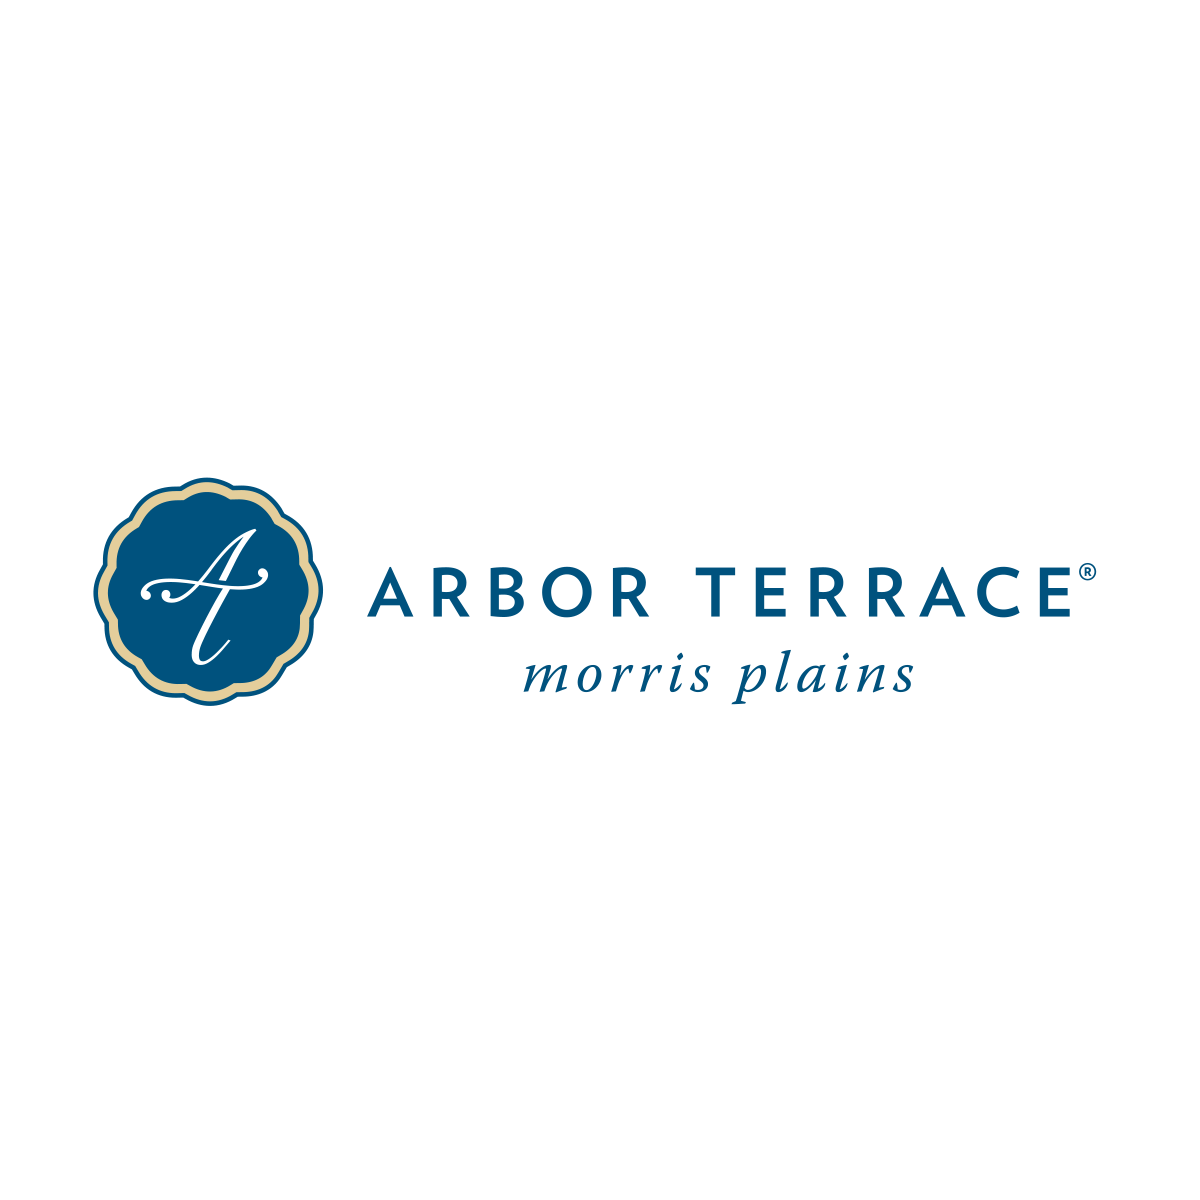 Arbor Terrace Morris Plains